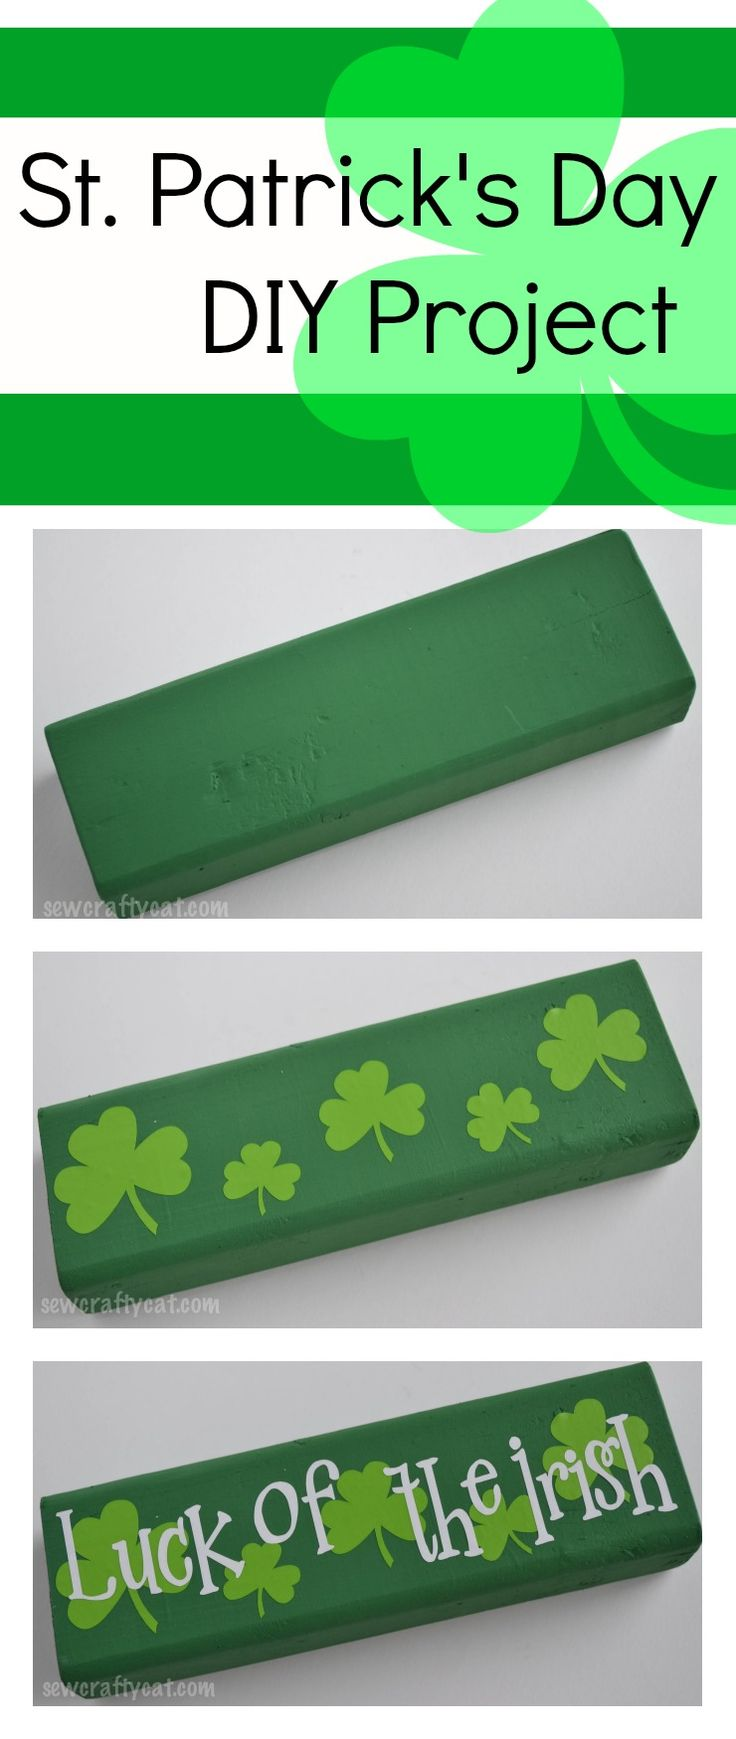 St. Patrick's Day DIY Tutorial | sewcraftycat.com #DIY #craft #silhouettecameo